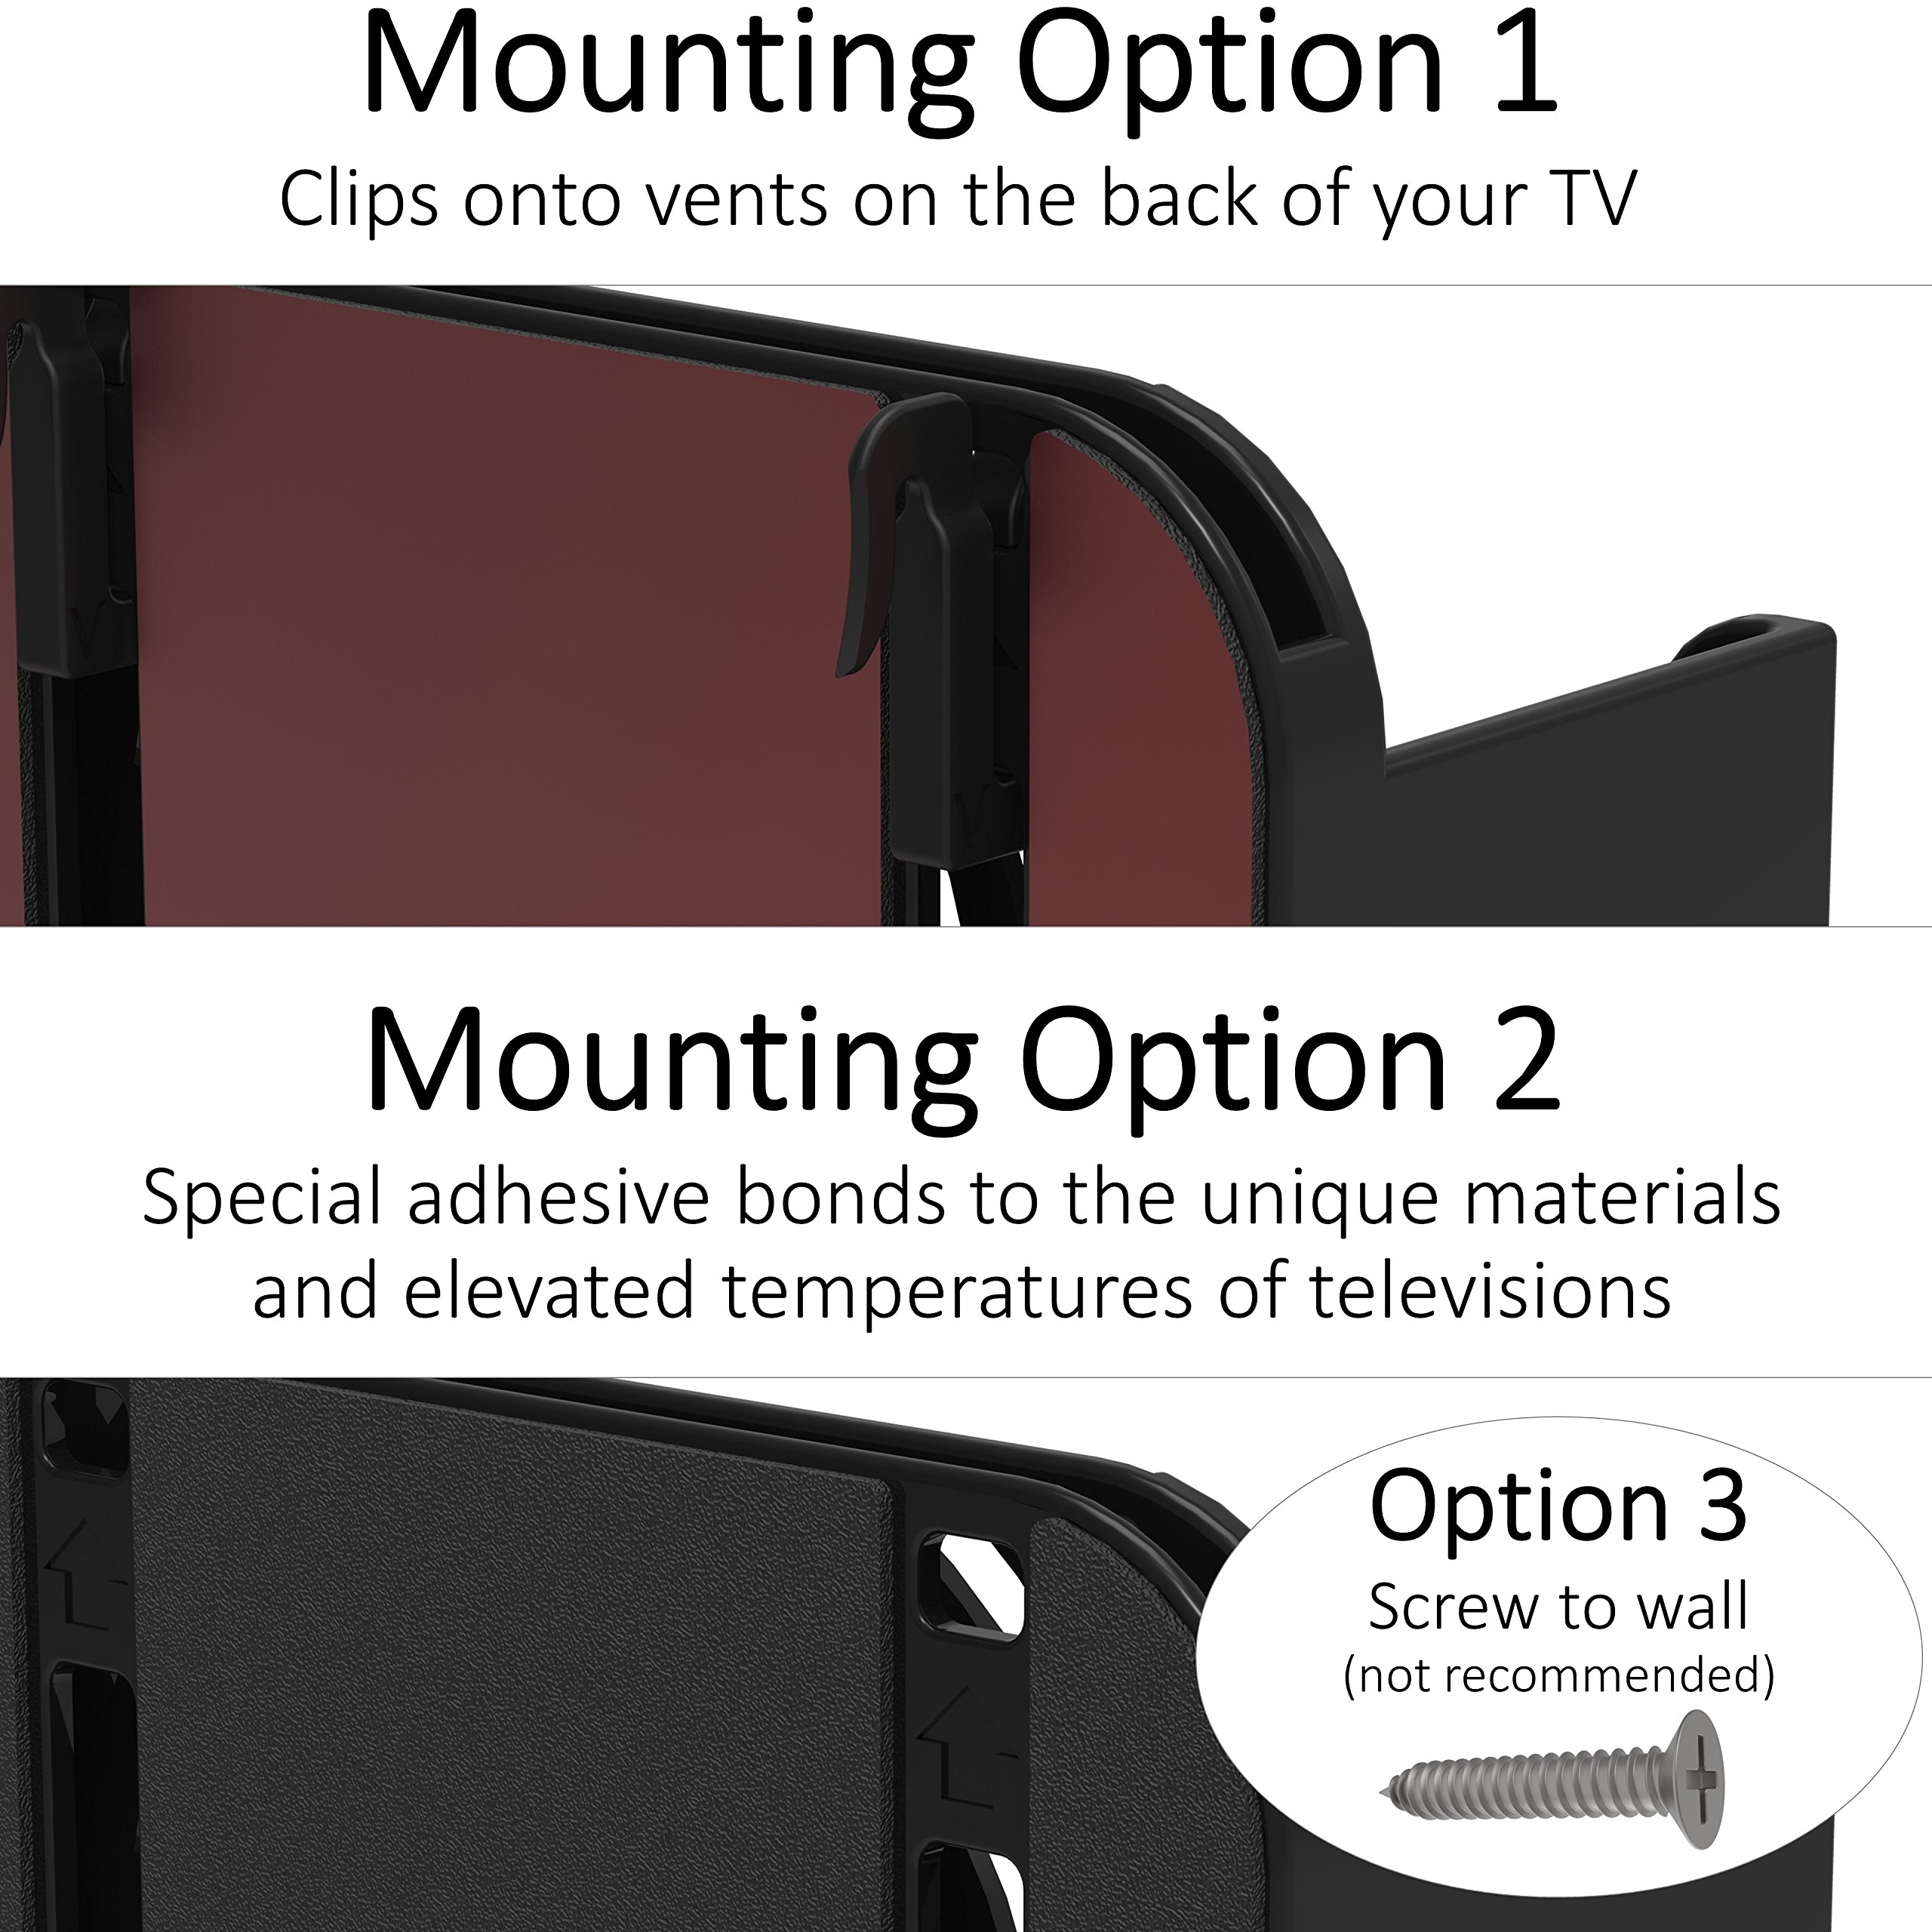 TotalMount Apple TV Mount - Compatible with all Apple TVs including Apple TV 4K by TotalMount (Image #6)